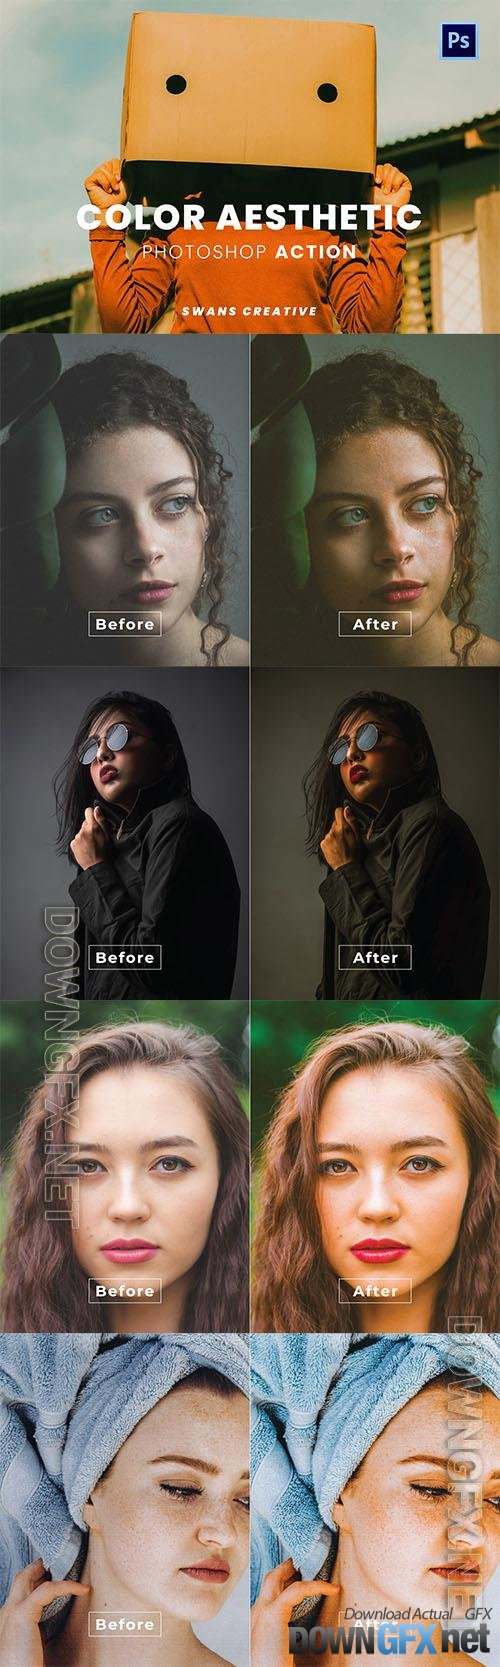 Color Aesthetic Photoshop Action